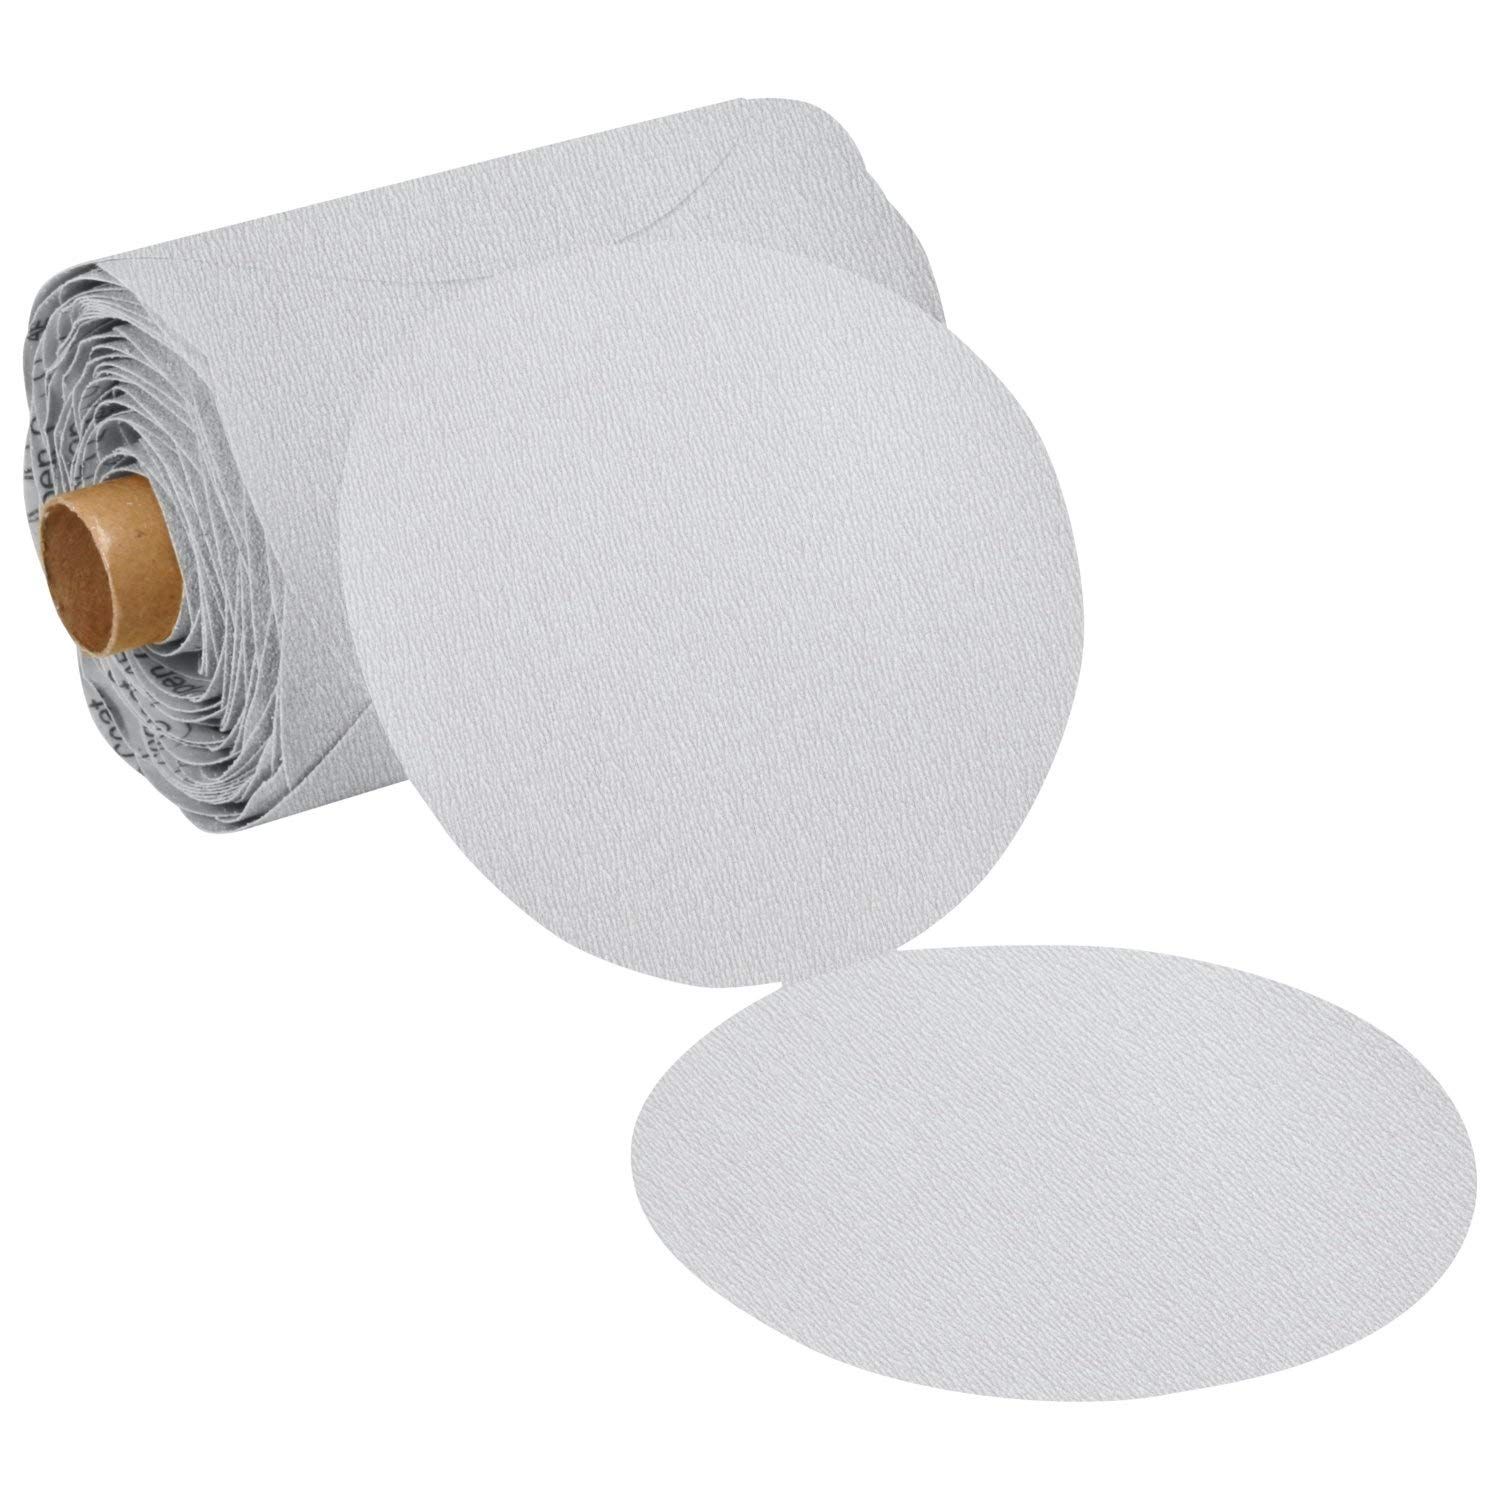 3M Stikit Paper Disc Roll 426U, 320 A-weight, 5 in x NH, Die 500X 71fF0gOejxL